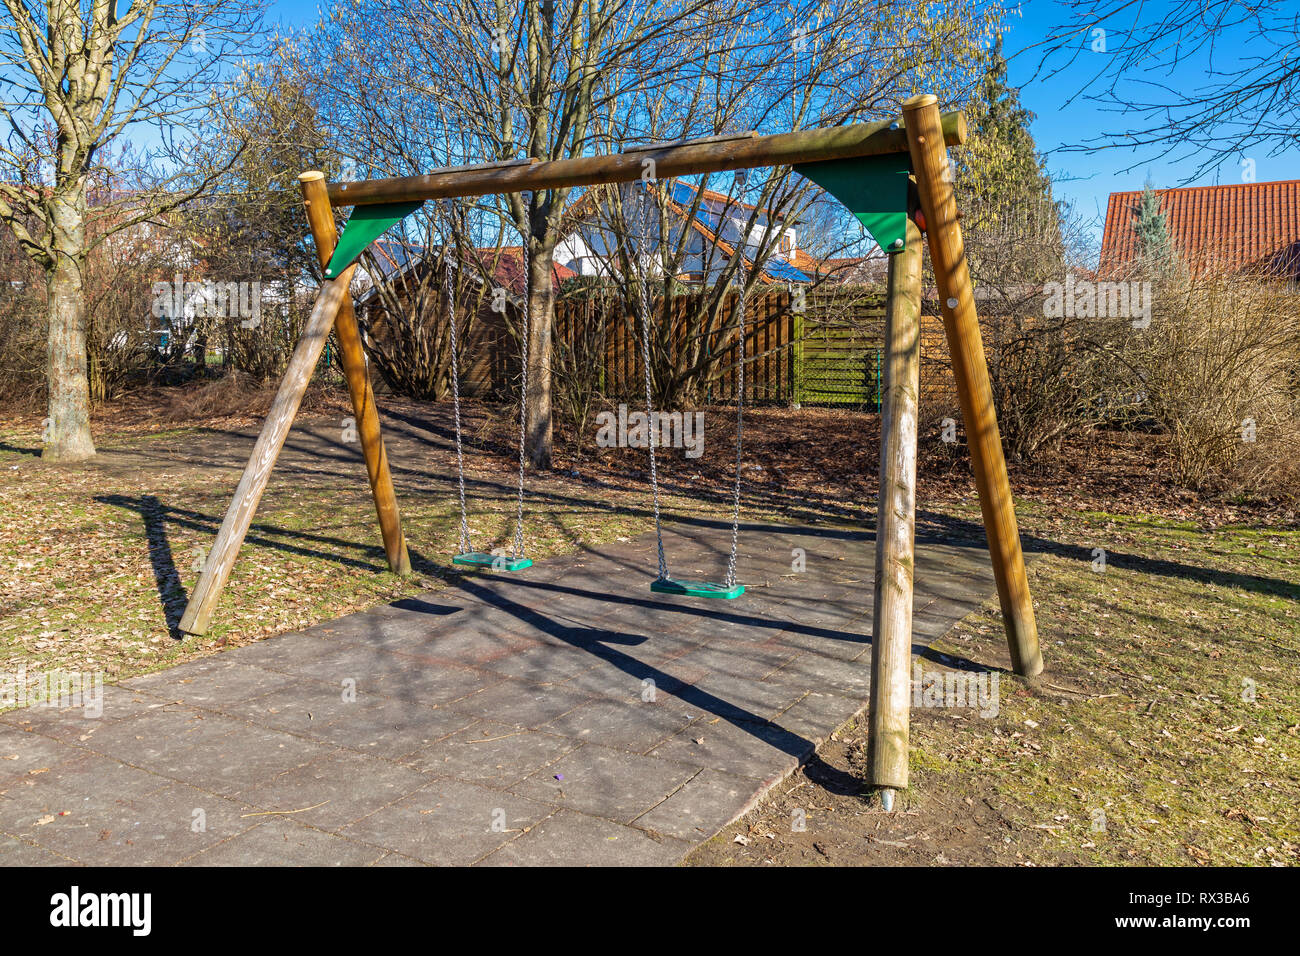 Swing on a deserted playground in late autumn - Stock Image